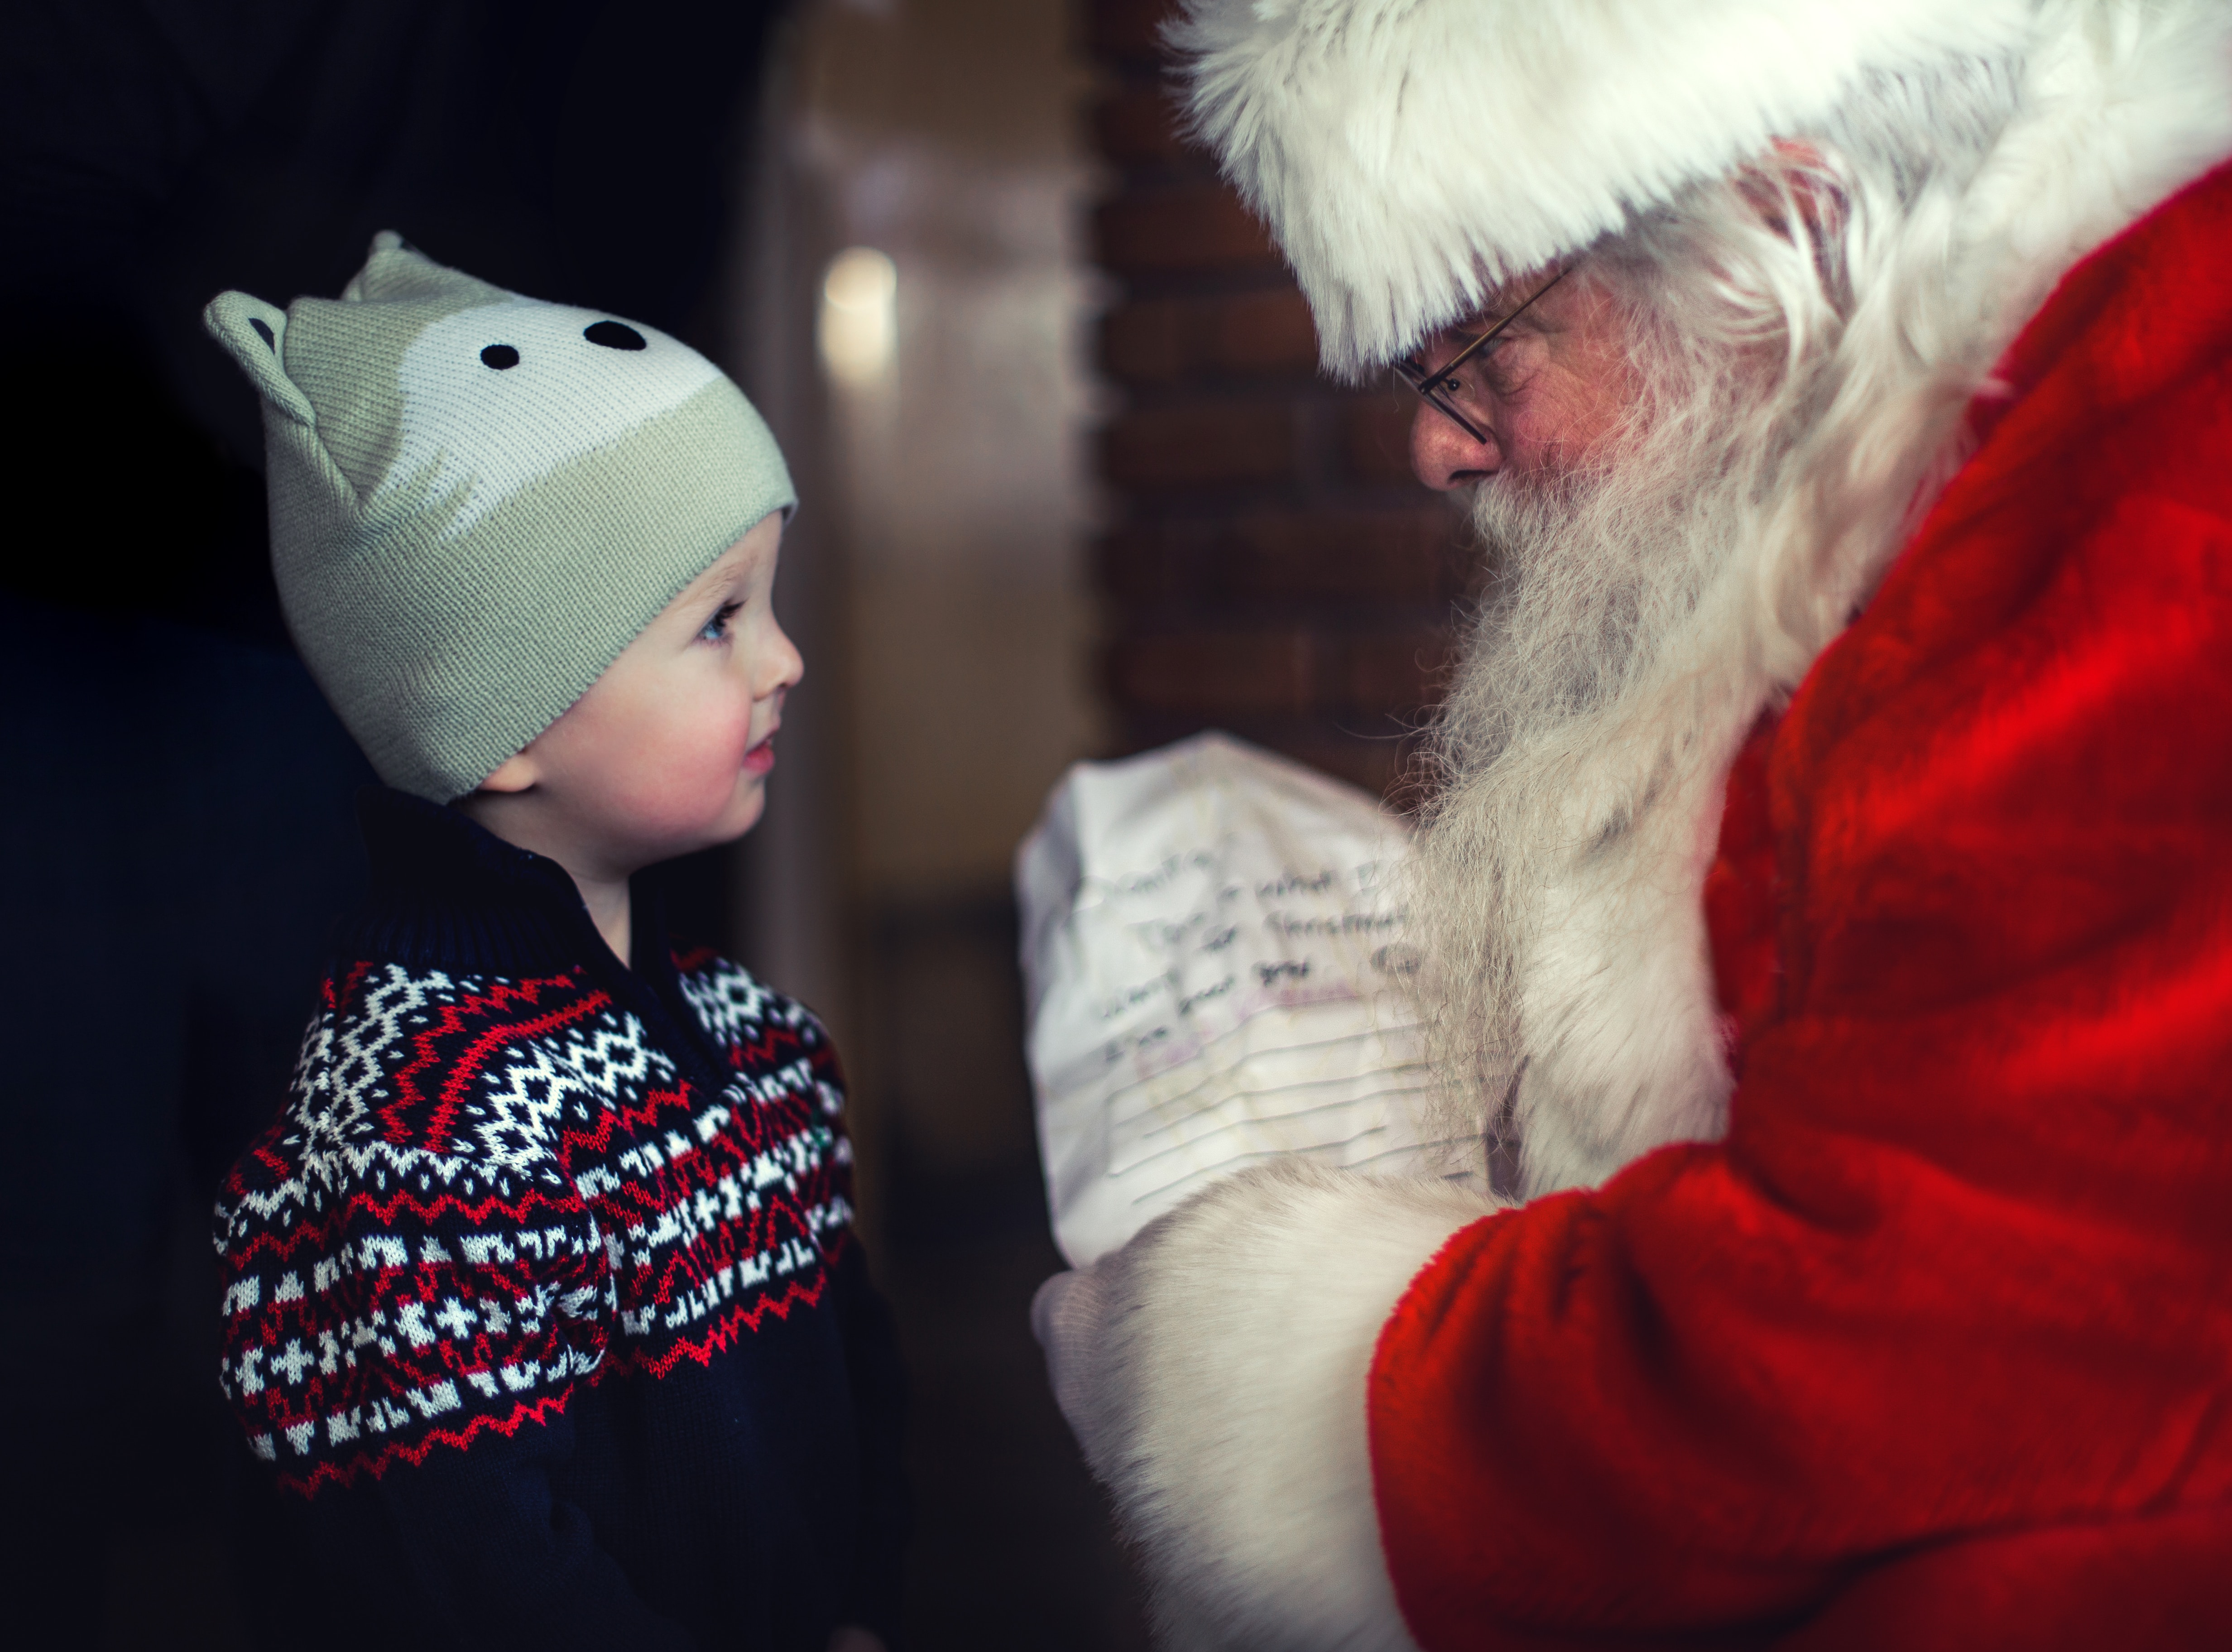 Father Christmas passing a present to a young boy